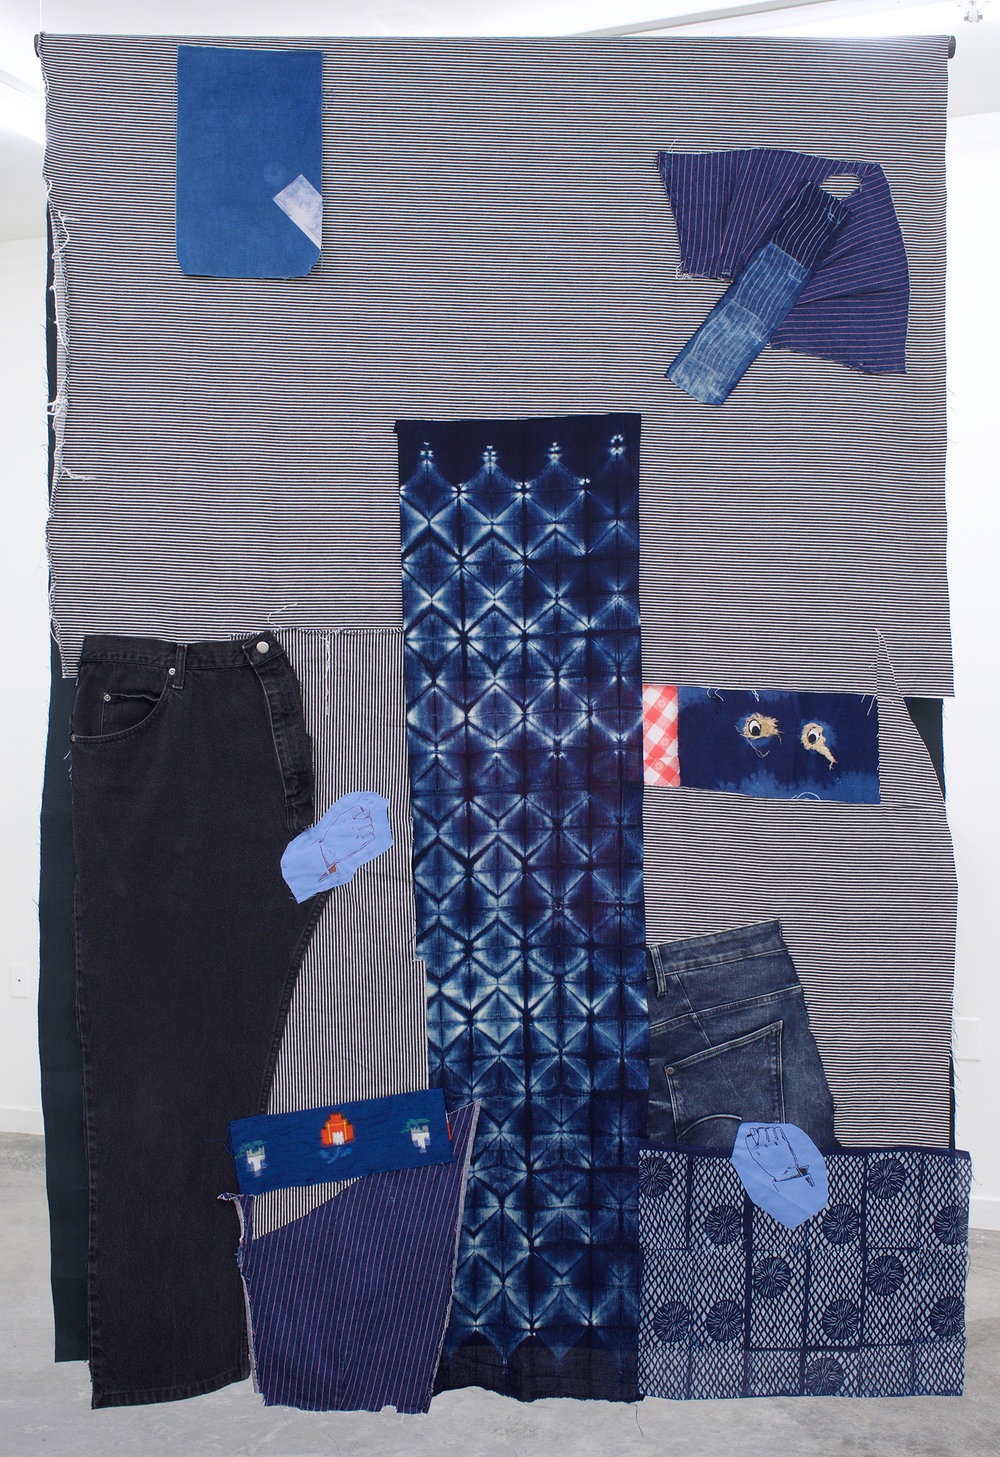 "AMANDA CURRERI Homo-Hime, 2018 Hand-dyed and hand-printed fabrics with indigo, madder, soot/soya, acrylic on various fabrics such as used tablecloths, vintage Japanese silk, Japanese denim (new), deconstructed denim jeans, dog toy eyes, digital print on fabric (two-sided), 72"" x 48"""